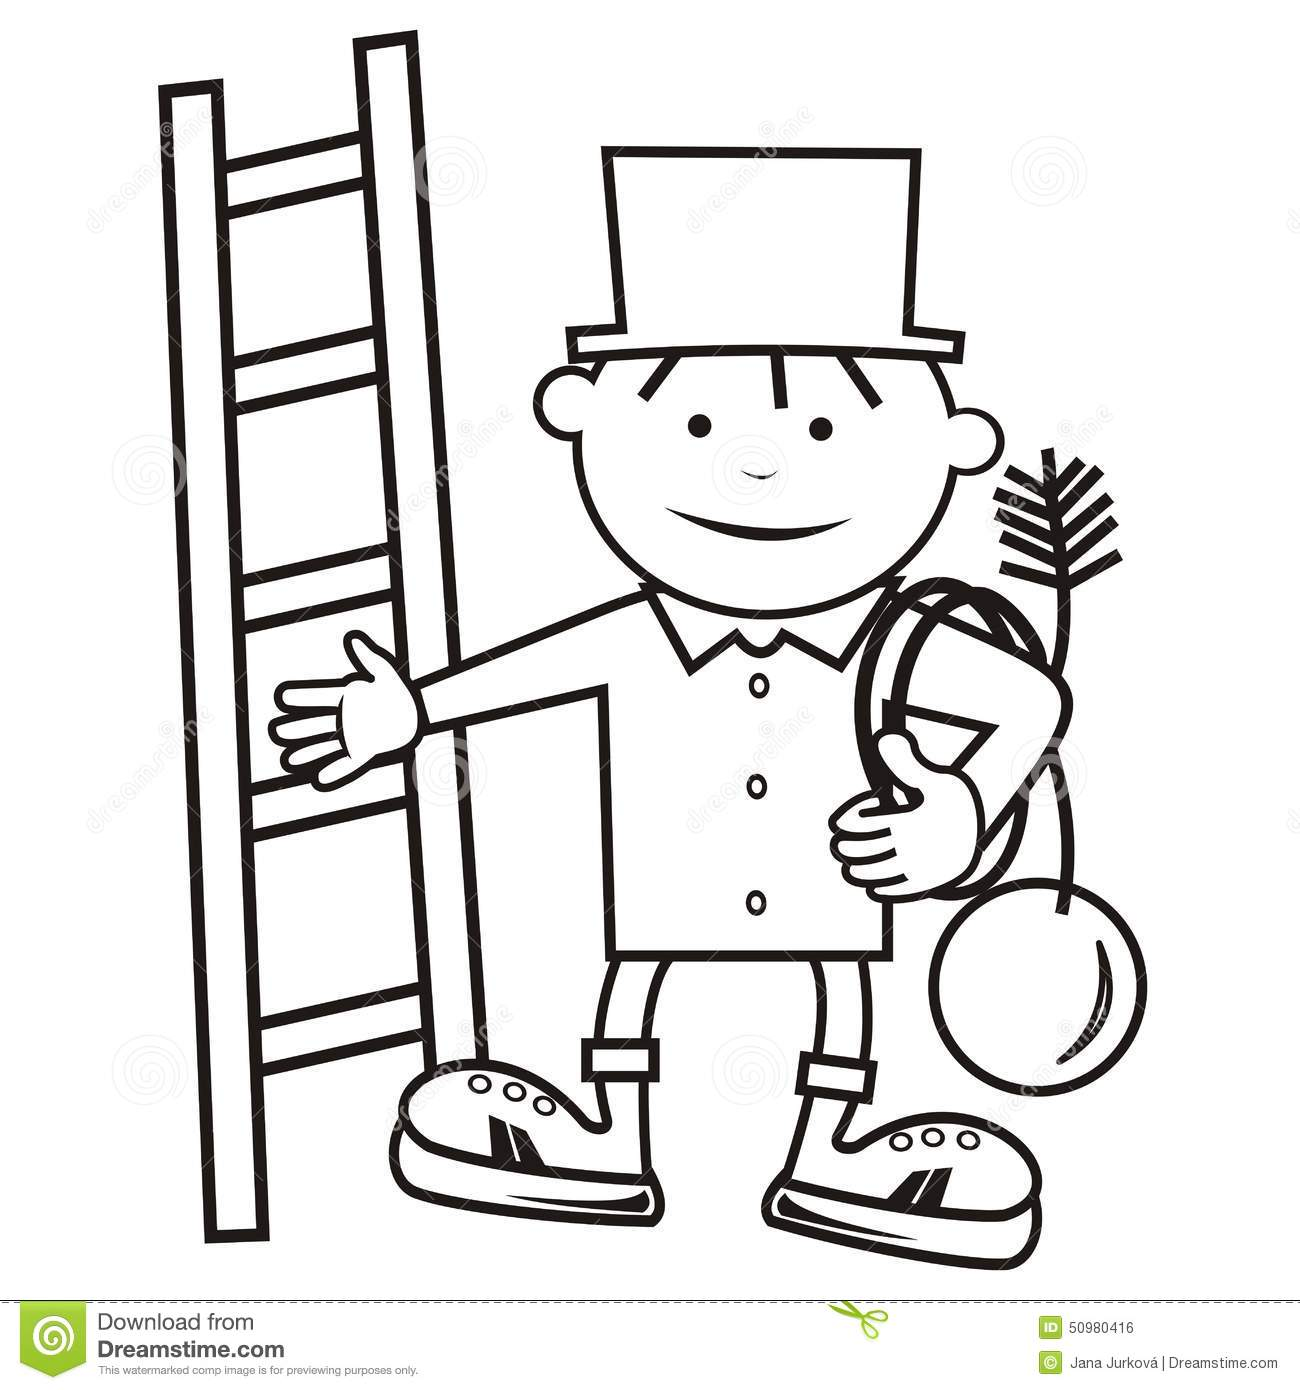 chimney sweep coloring book stock vector image 50980416